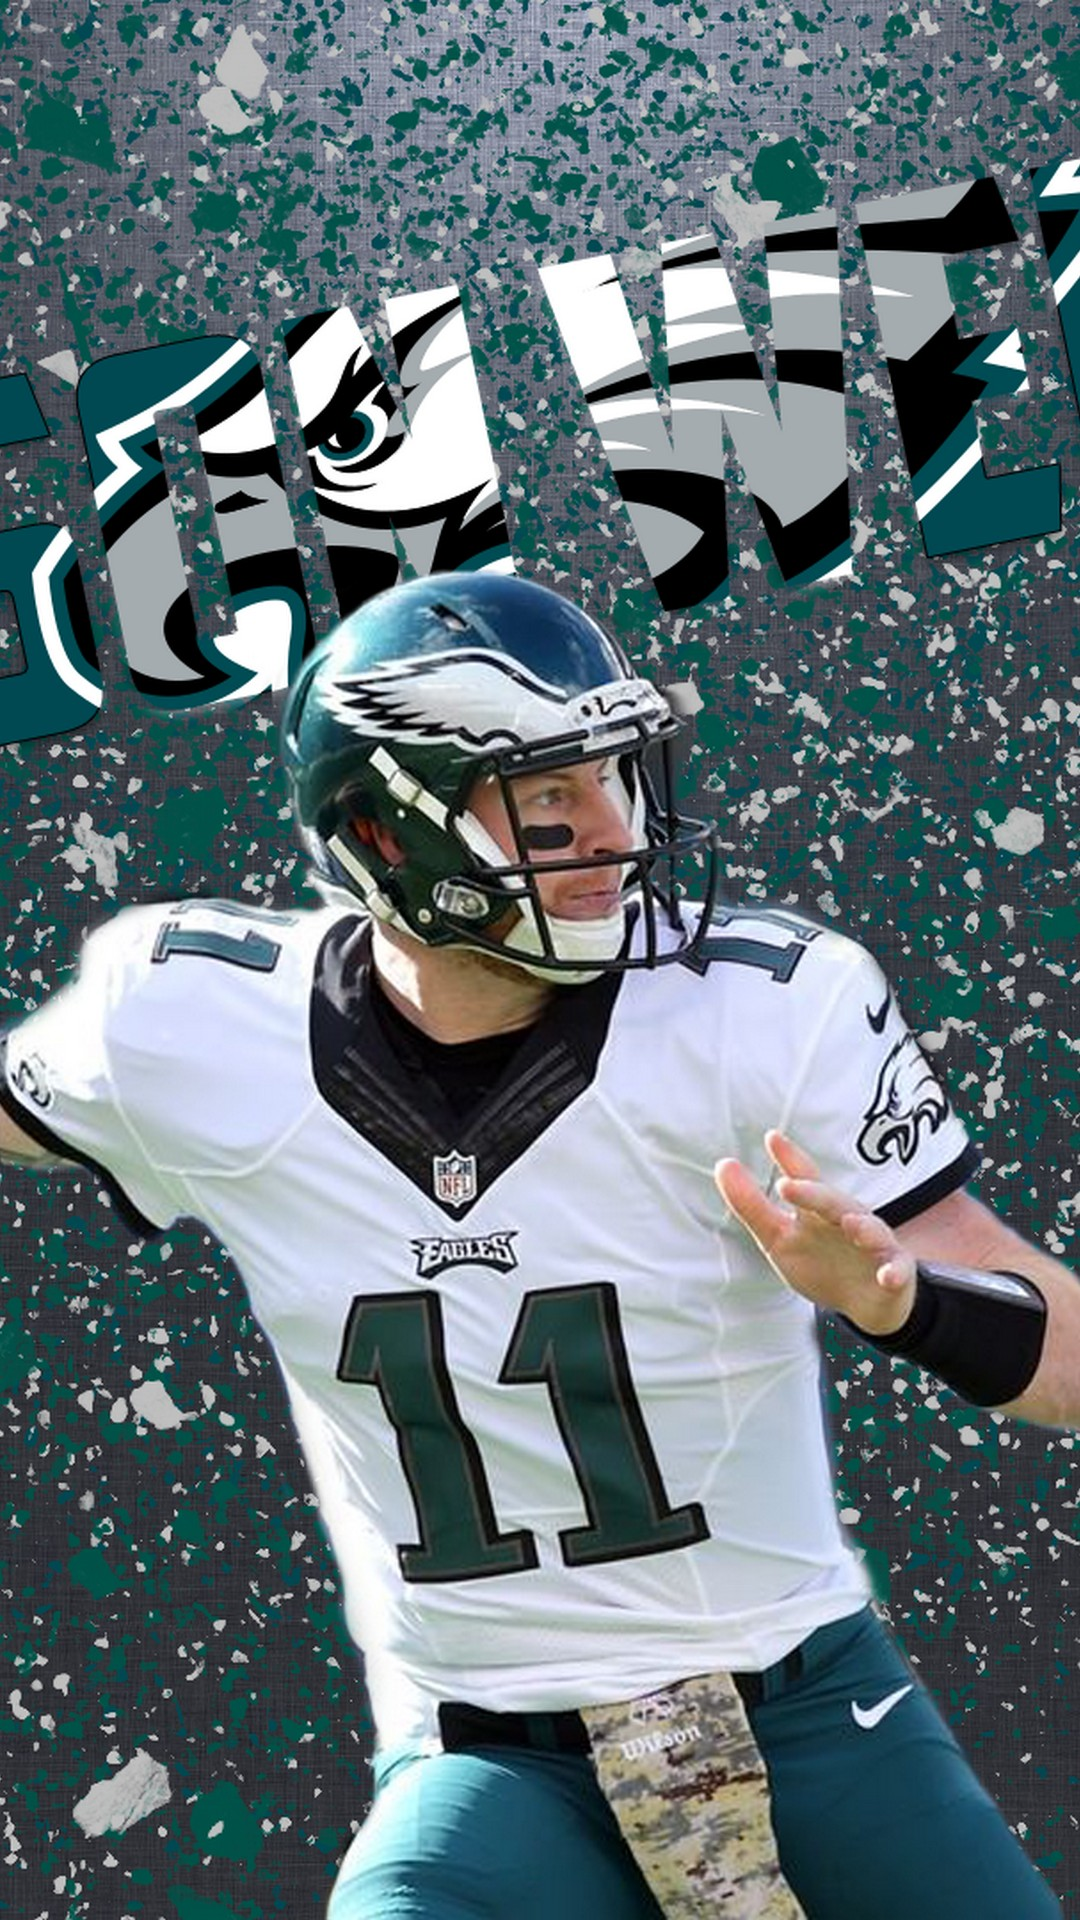 Philadelphia Eagles Wallpaper Iphone Hd With Resolution